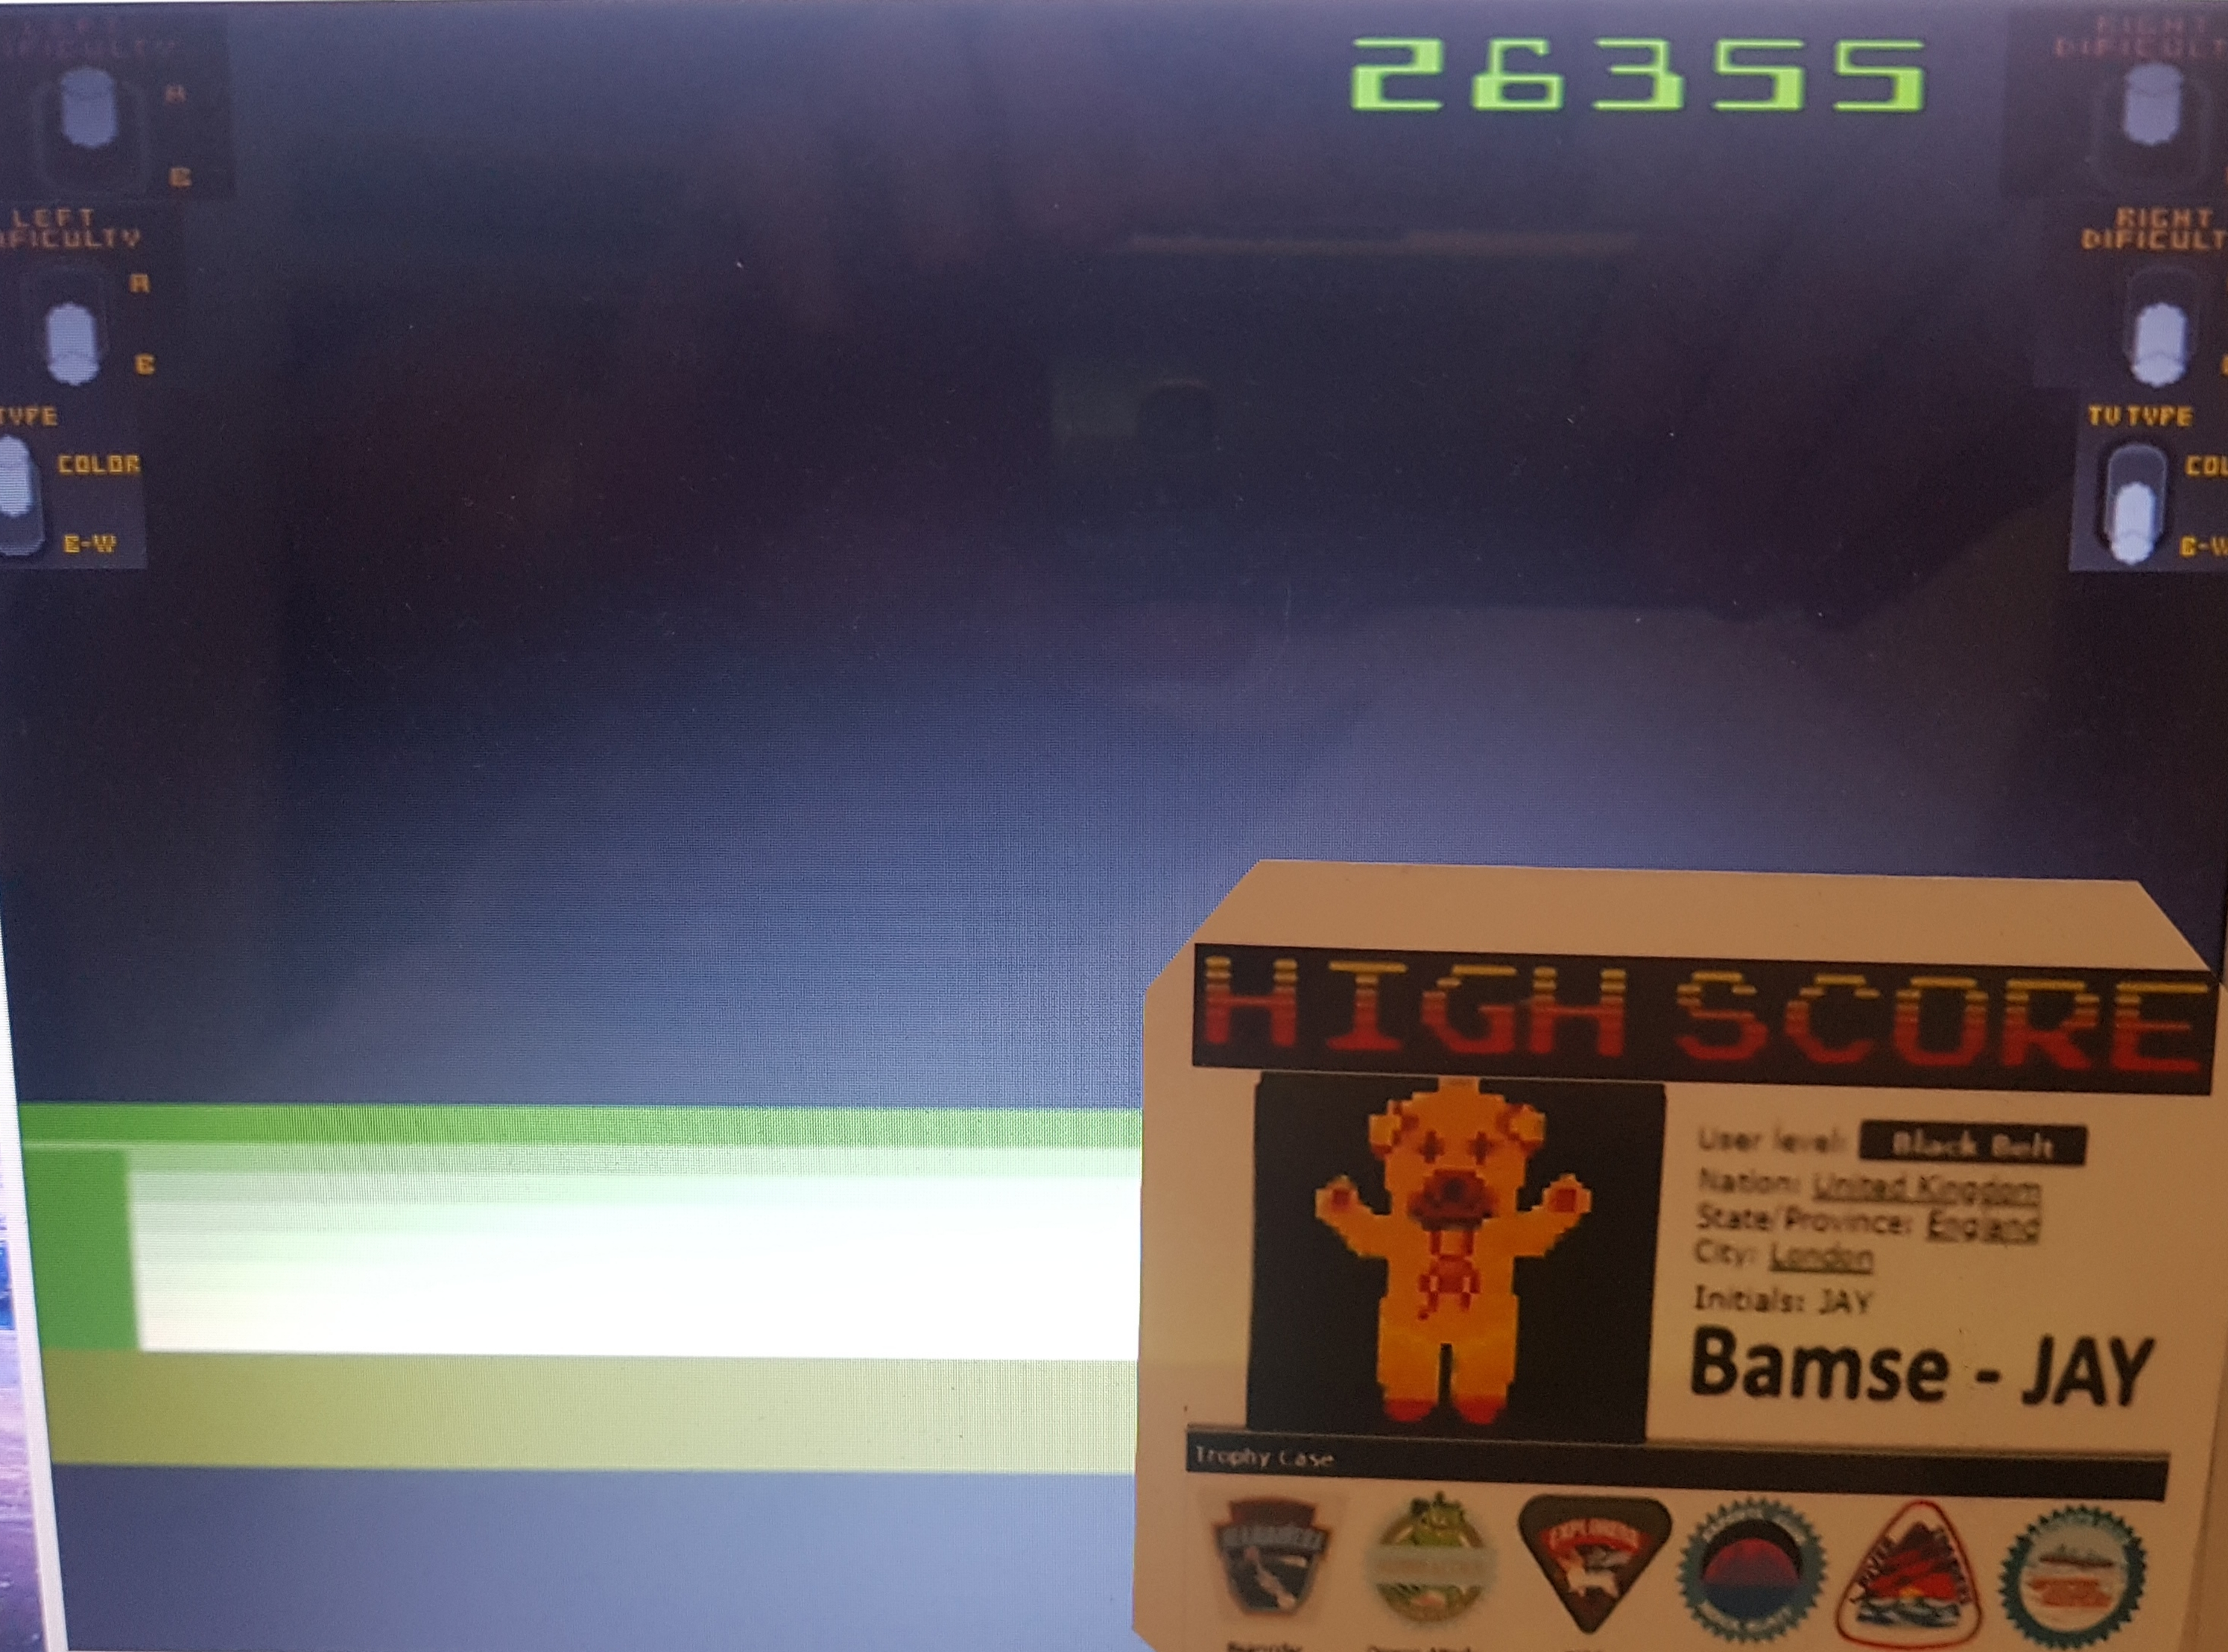 Bamse: Space Cavern (Atari 2600 Emulated Novice/B Mode) 26,355 points on 2019-10-30 13:45:07